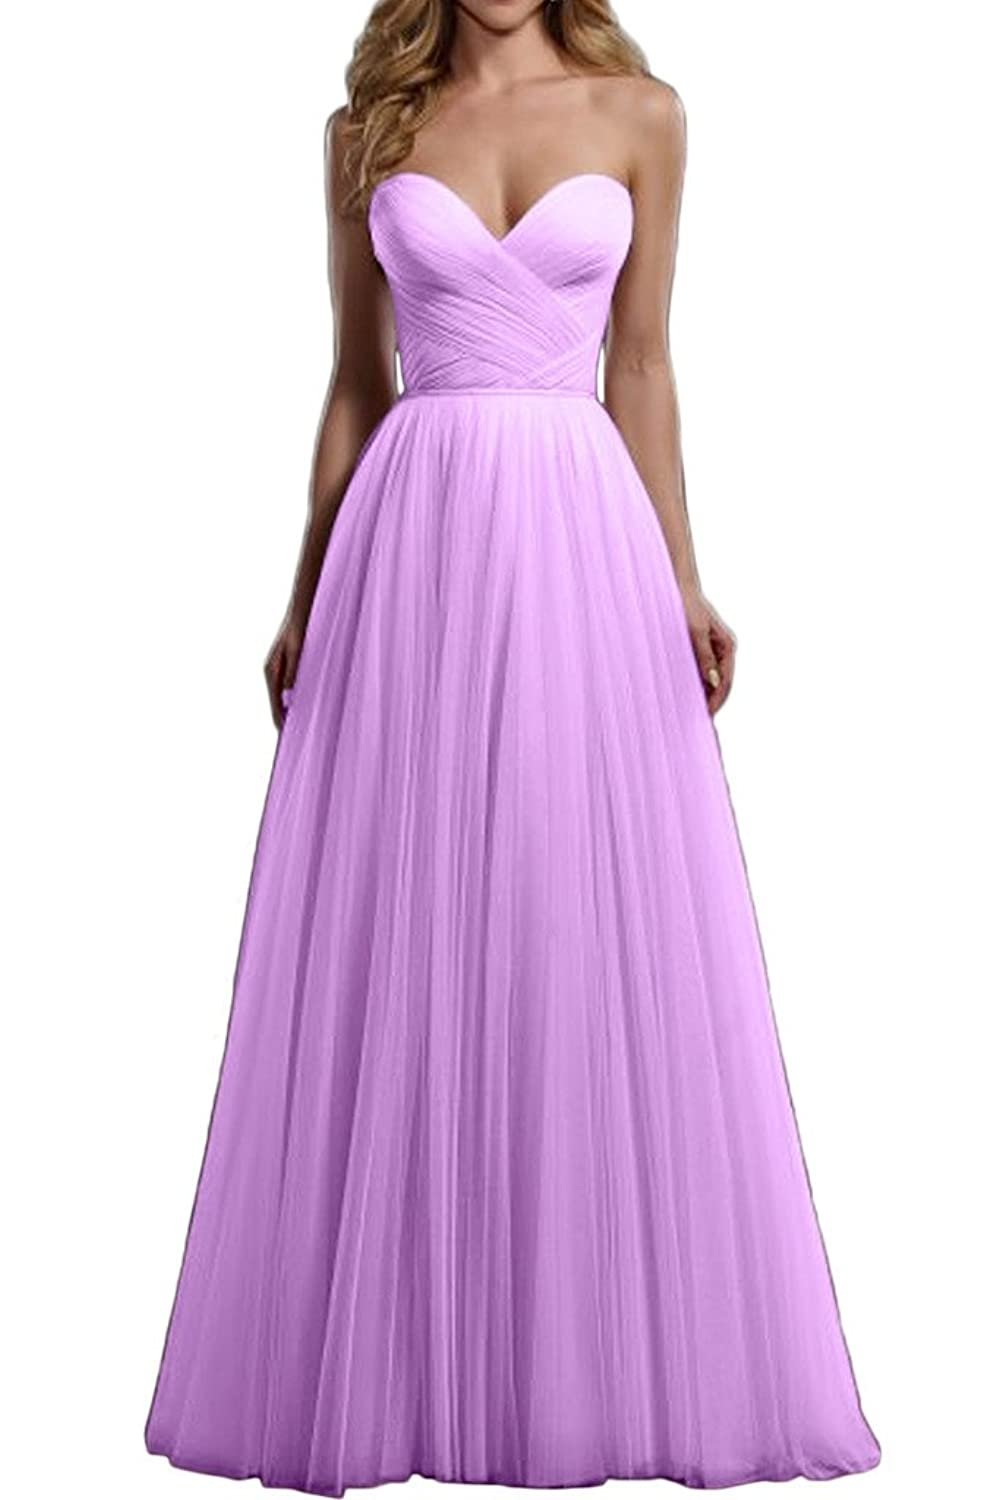 Gorgeous Bride Long A-line Sweetheart Beaded Sash Wedding Party Evening Dress